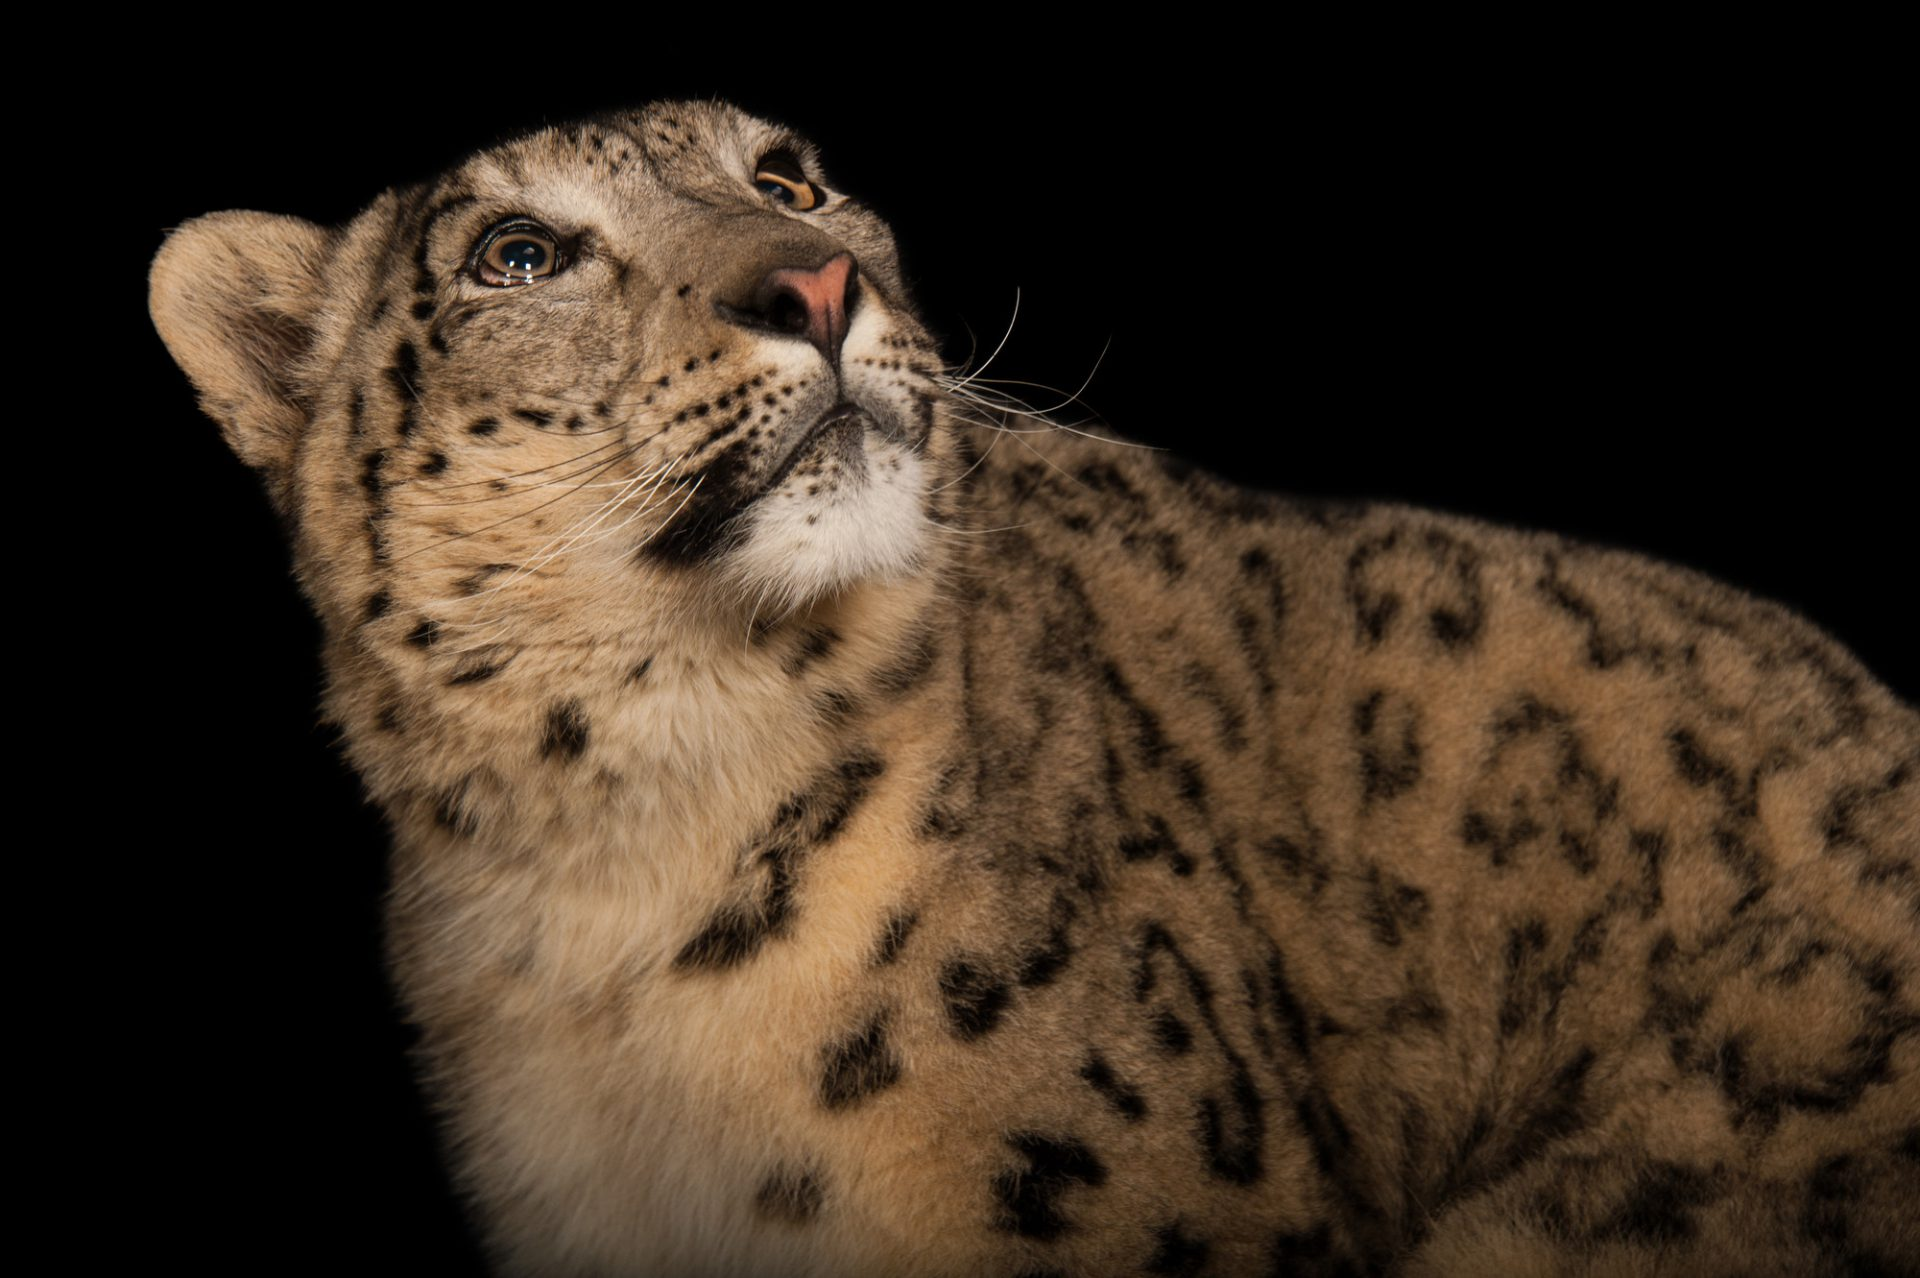 Photo: Snow leopard (Uncia uncia) at the Miller Park Zoo.